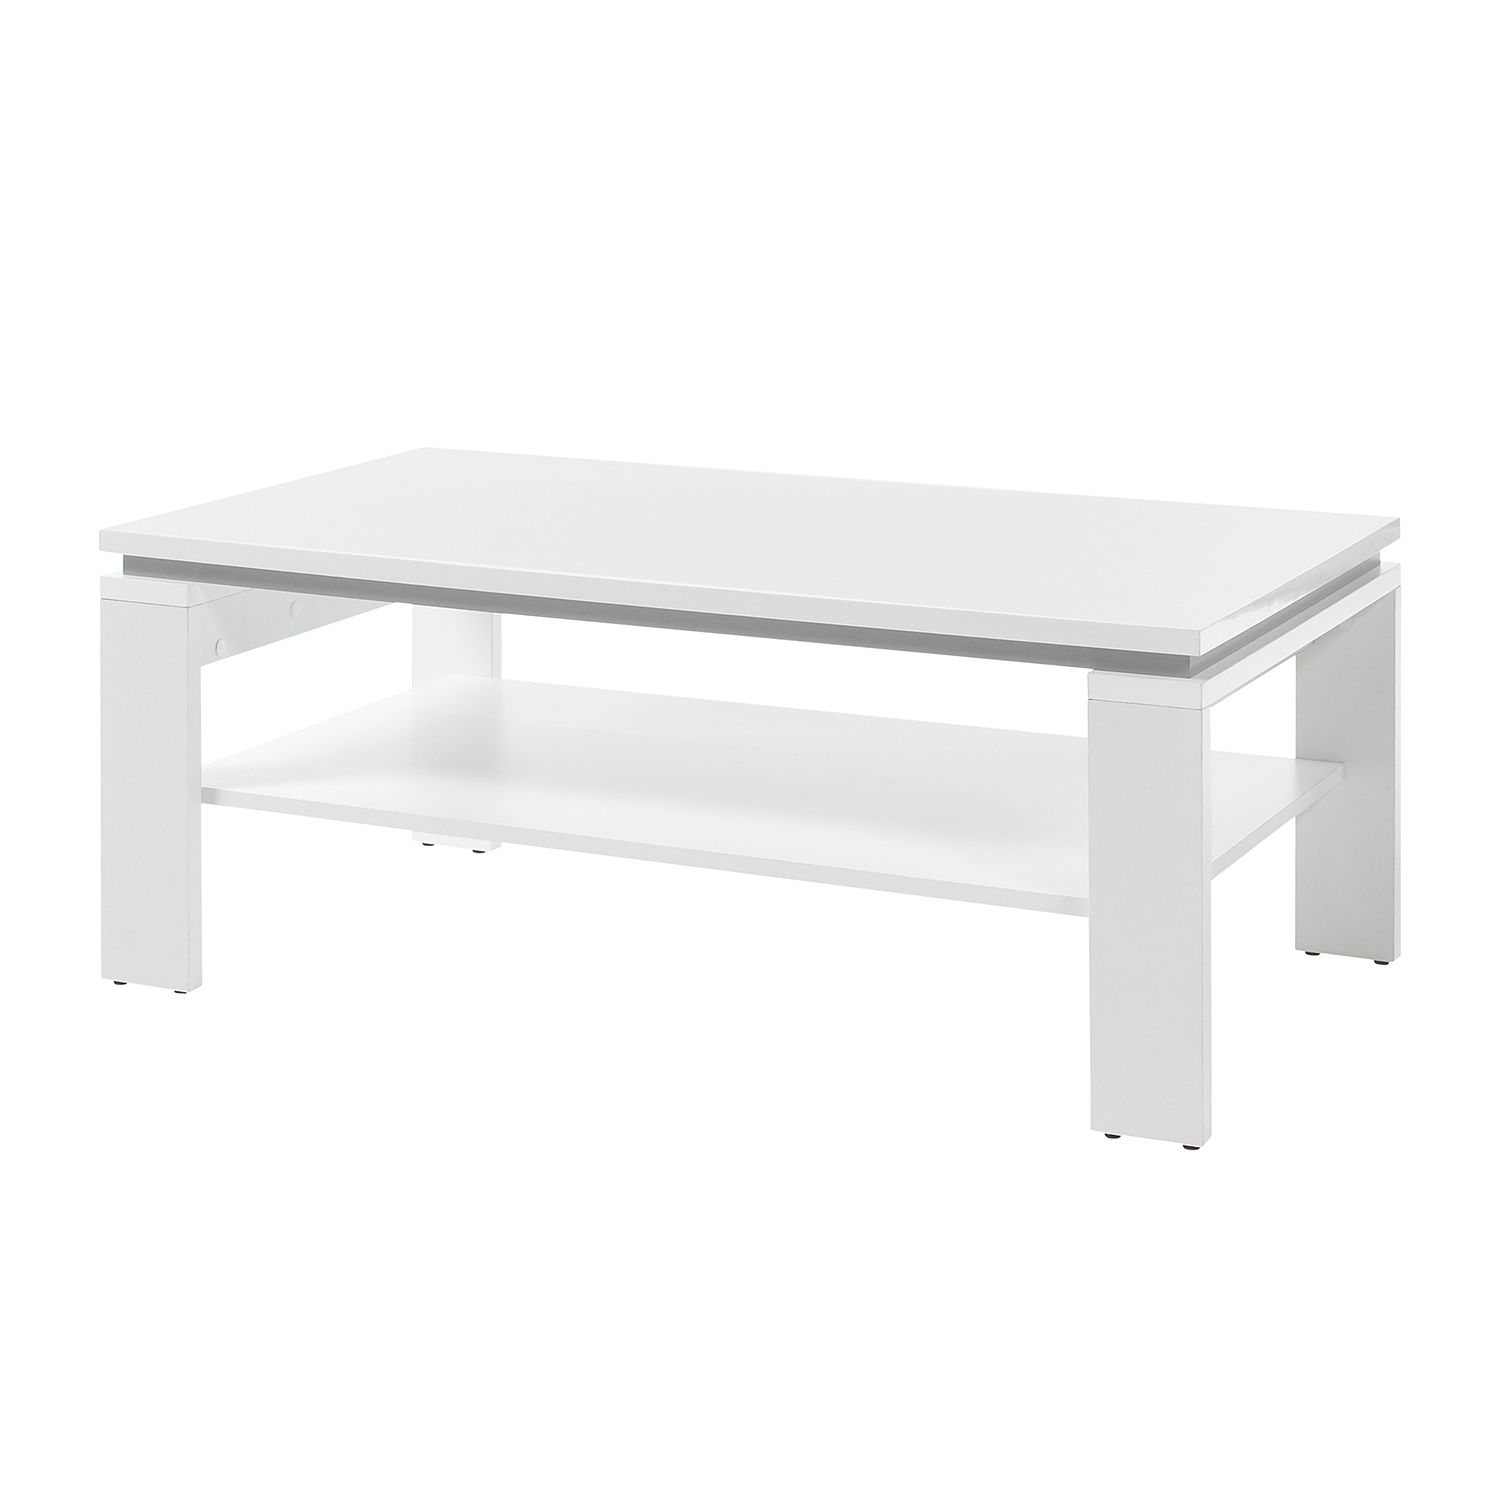 Table basse Liminka